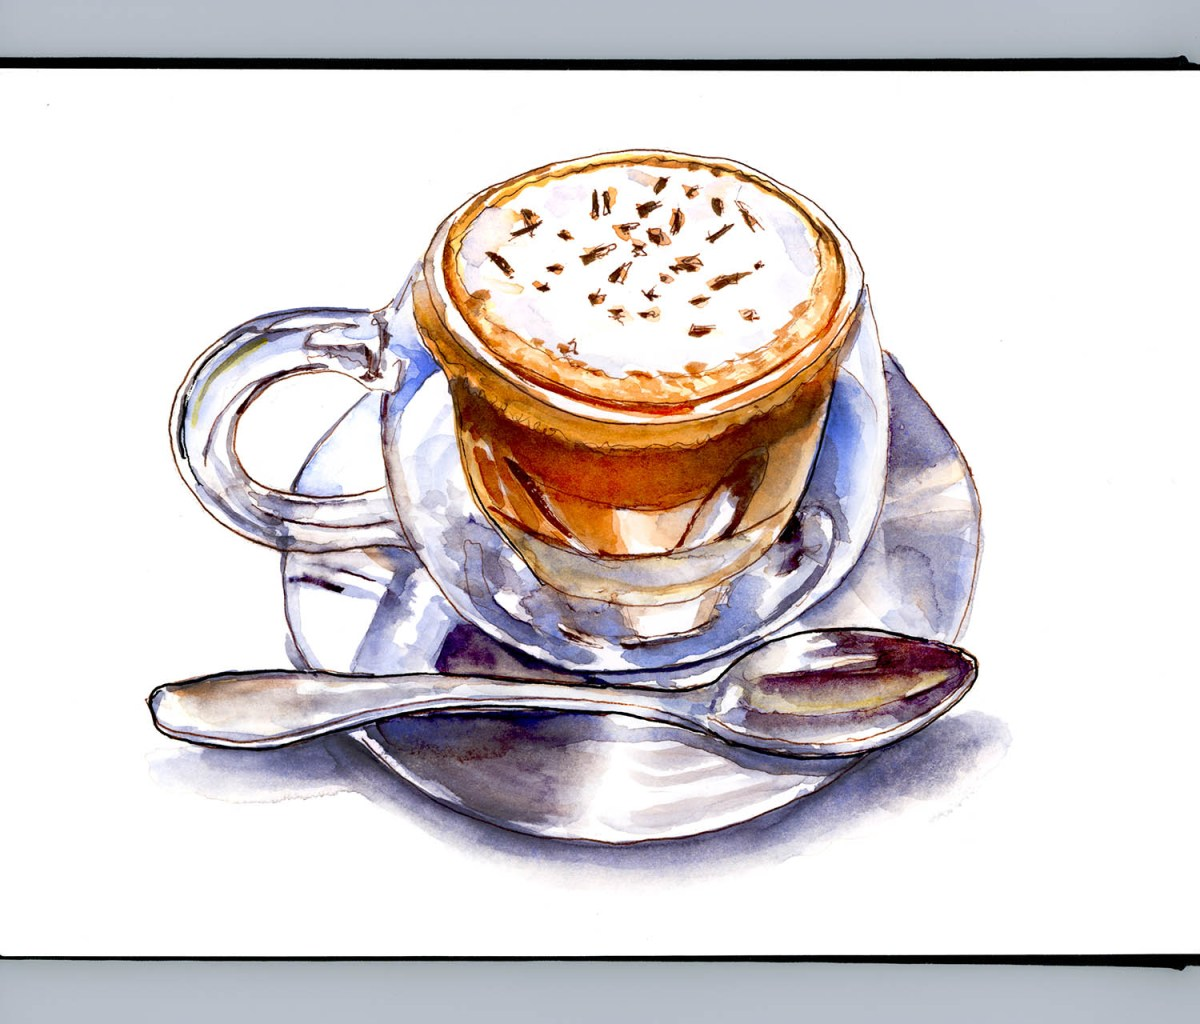 #WorldWatercolorGroup - Day 15 - A Shiny Cappuccino - Doodlewash